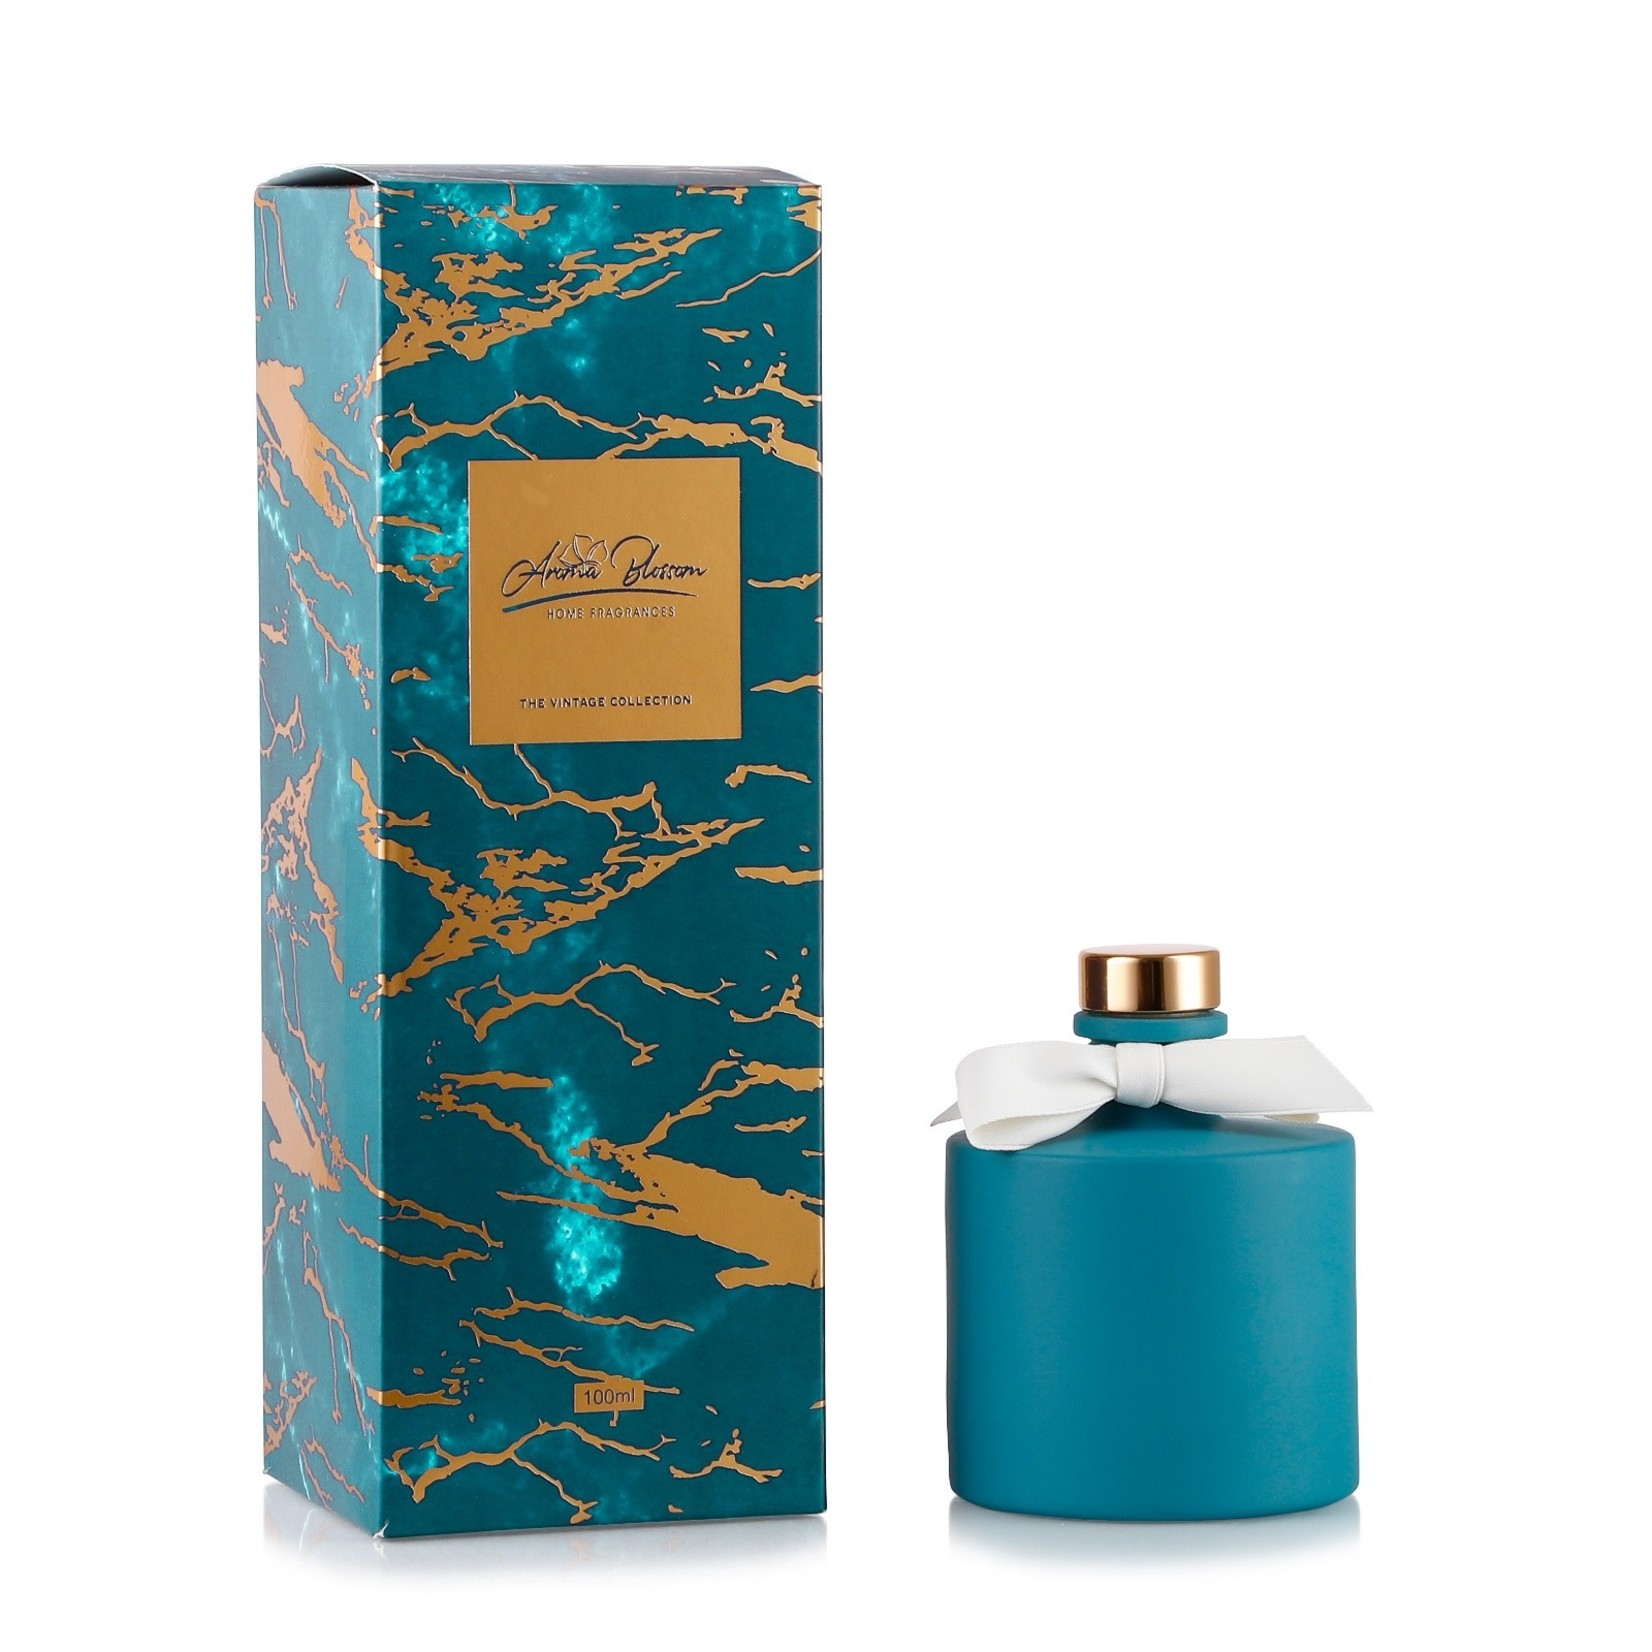 Aroma Blossom Teal Marble Diffuser